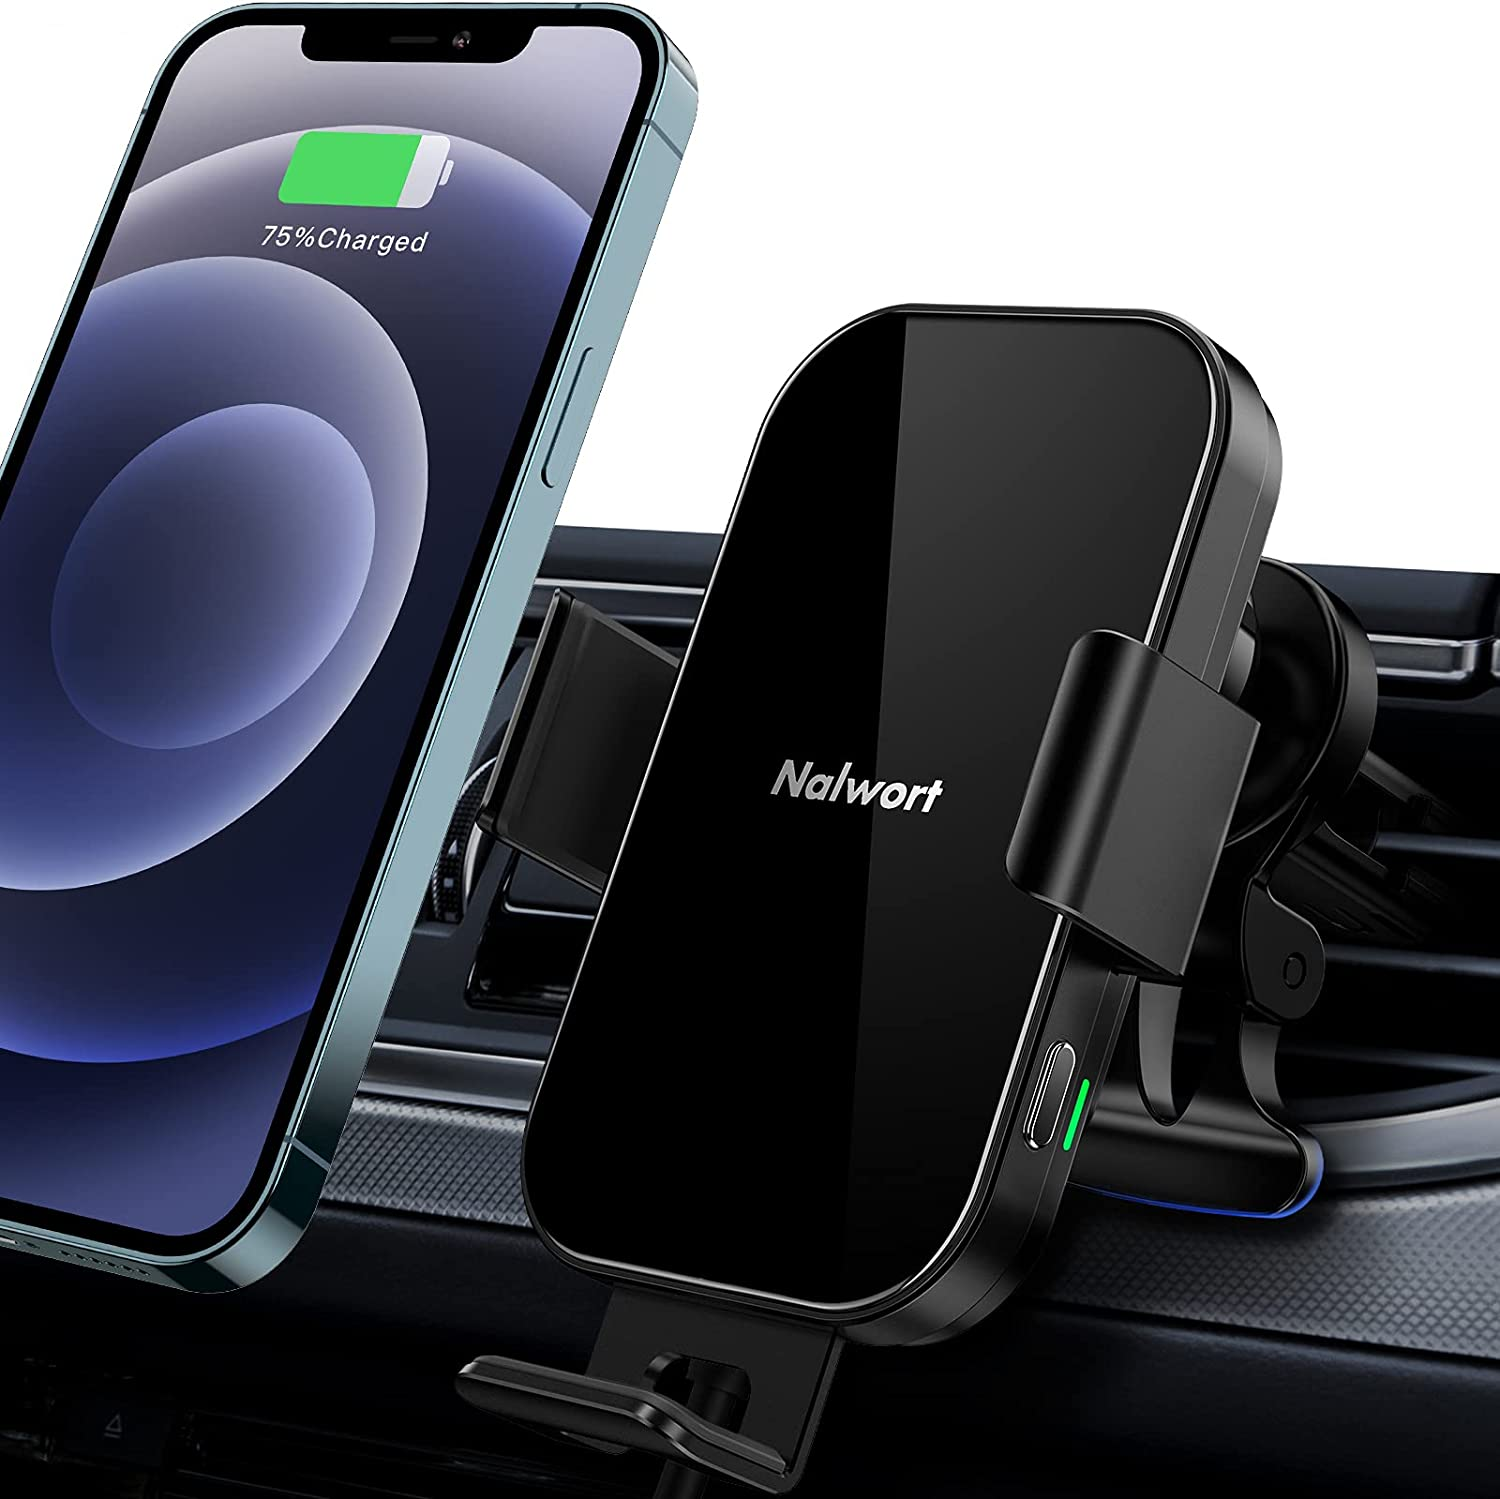 Wireless Car Charger, Nalwort 15W/10W/7.5W Qi Car Charger, Metal Frame Auto-Clamping Car Wireless Charger Mount Air Vent Phone Holder Compatible with iPhone 12/11/Pro/Pro Max, Samsung S21/S20/Note 20